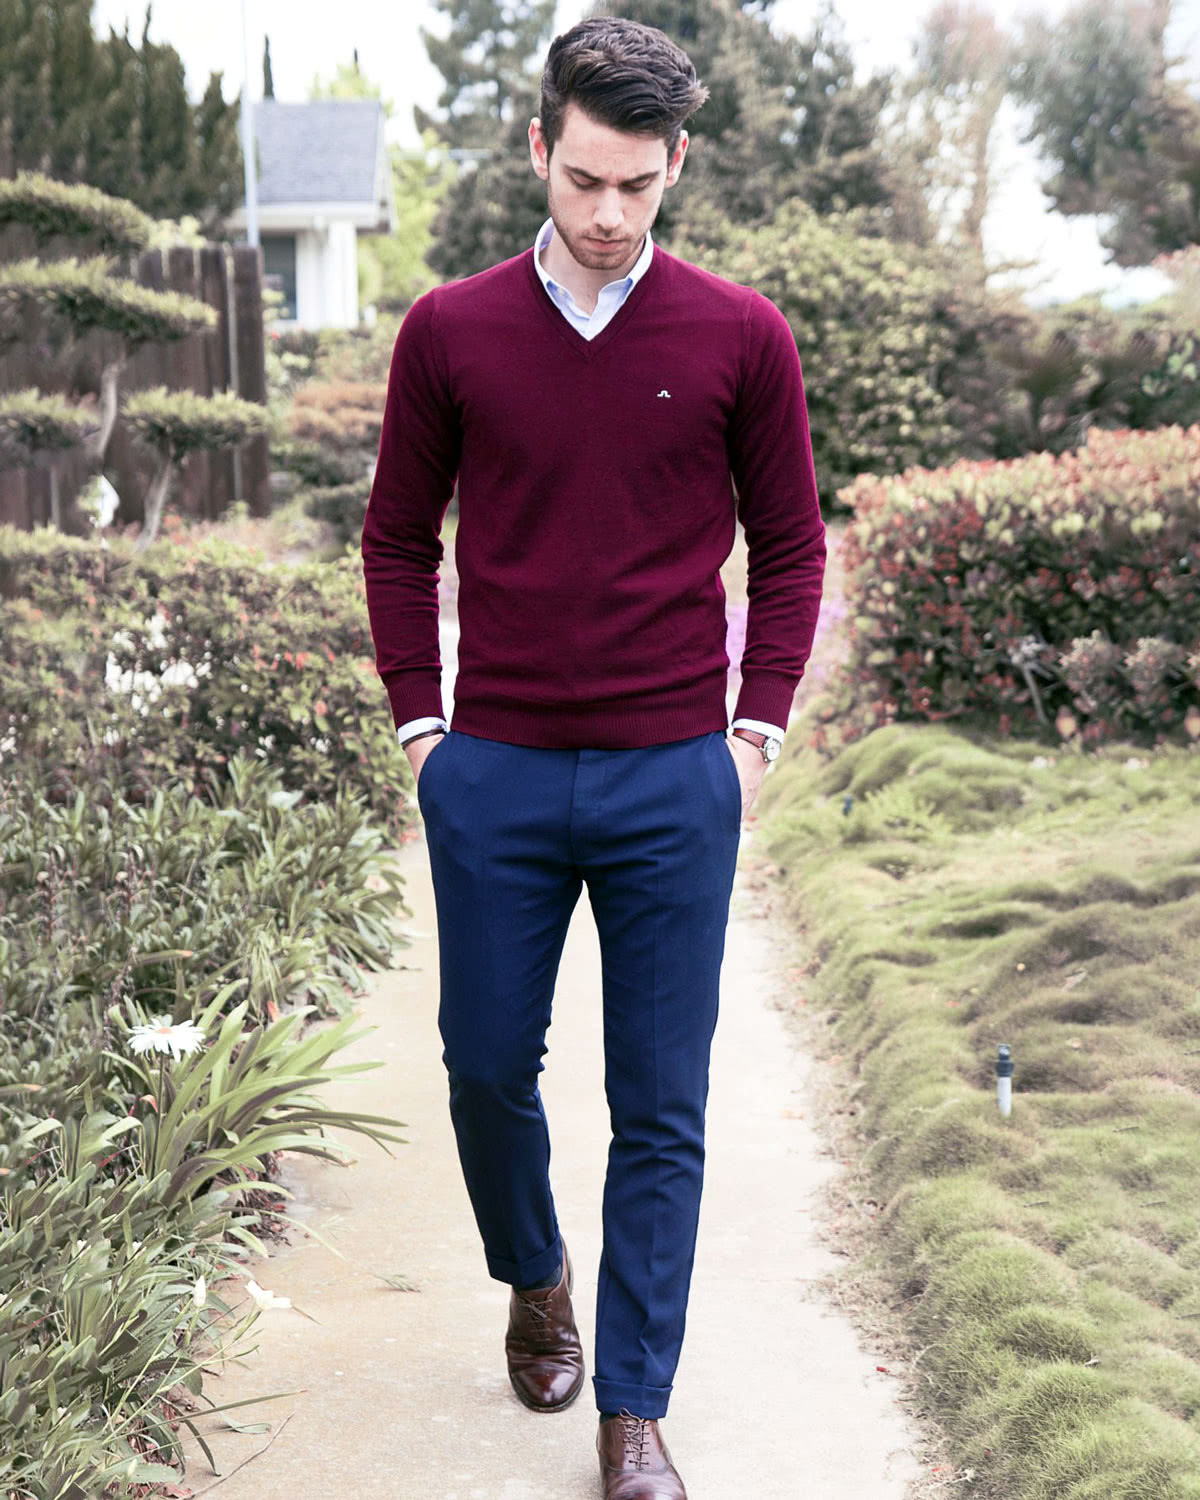 smart casual dress code men knitwear style - Luxe Digital